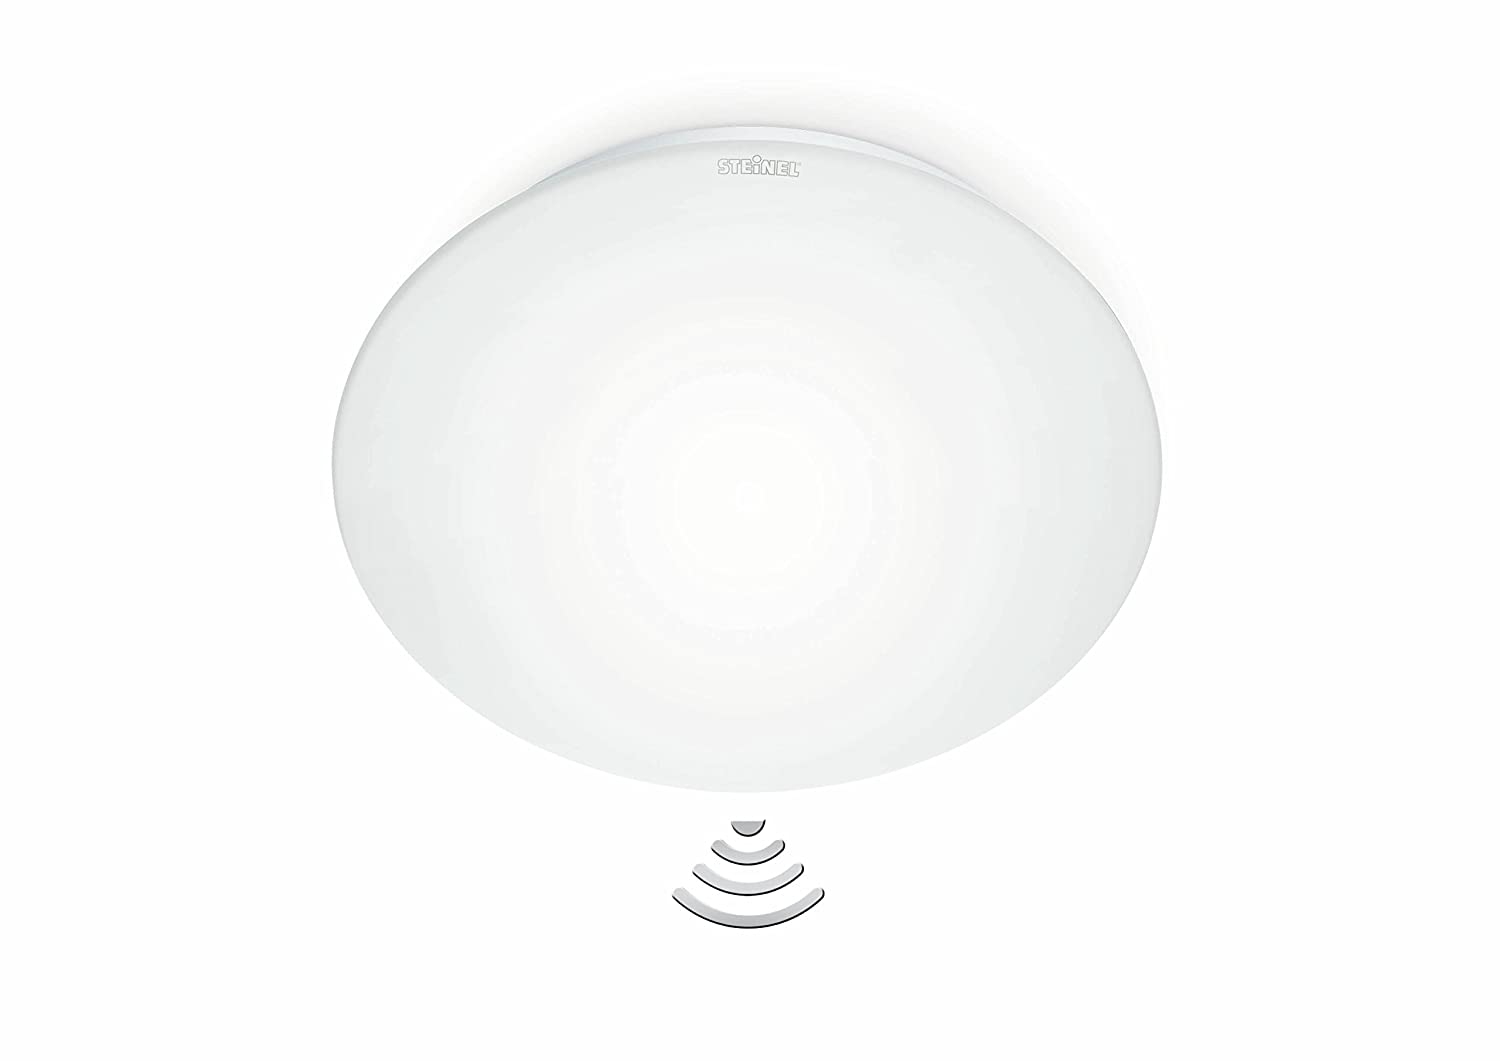 Amazon.com: Steinel RS16L Indoor High Frequency Light, White: Kitchen & Dining